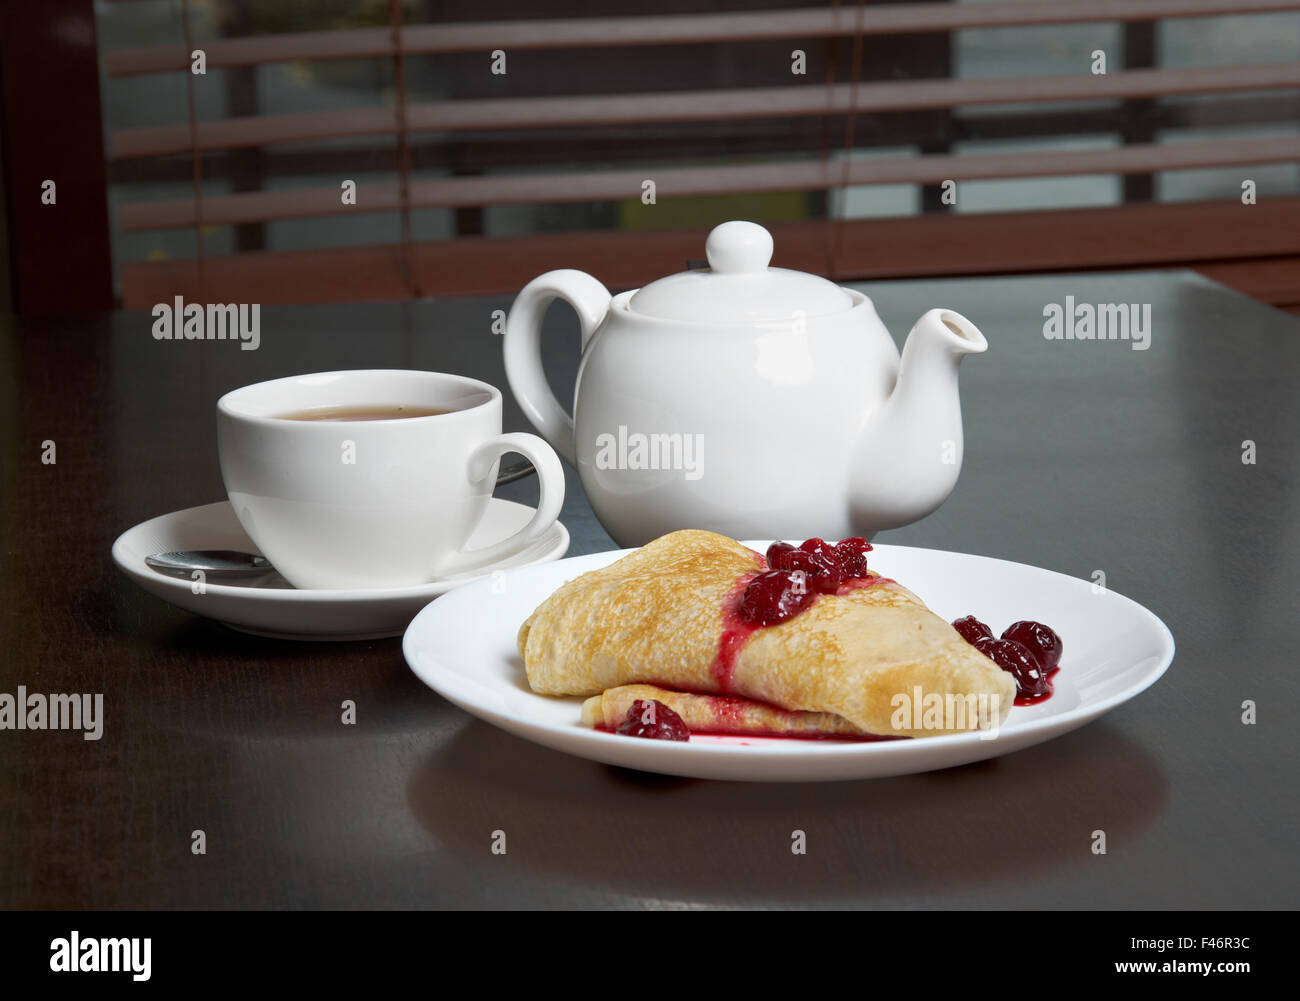 teapot, cup of tea and pancakes on plate with sweet cherry confiture - Stock Image